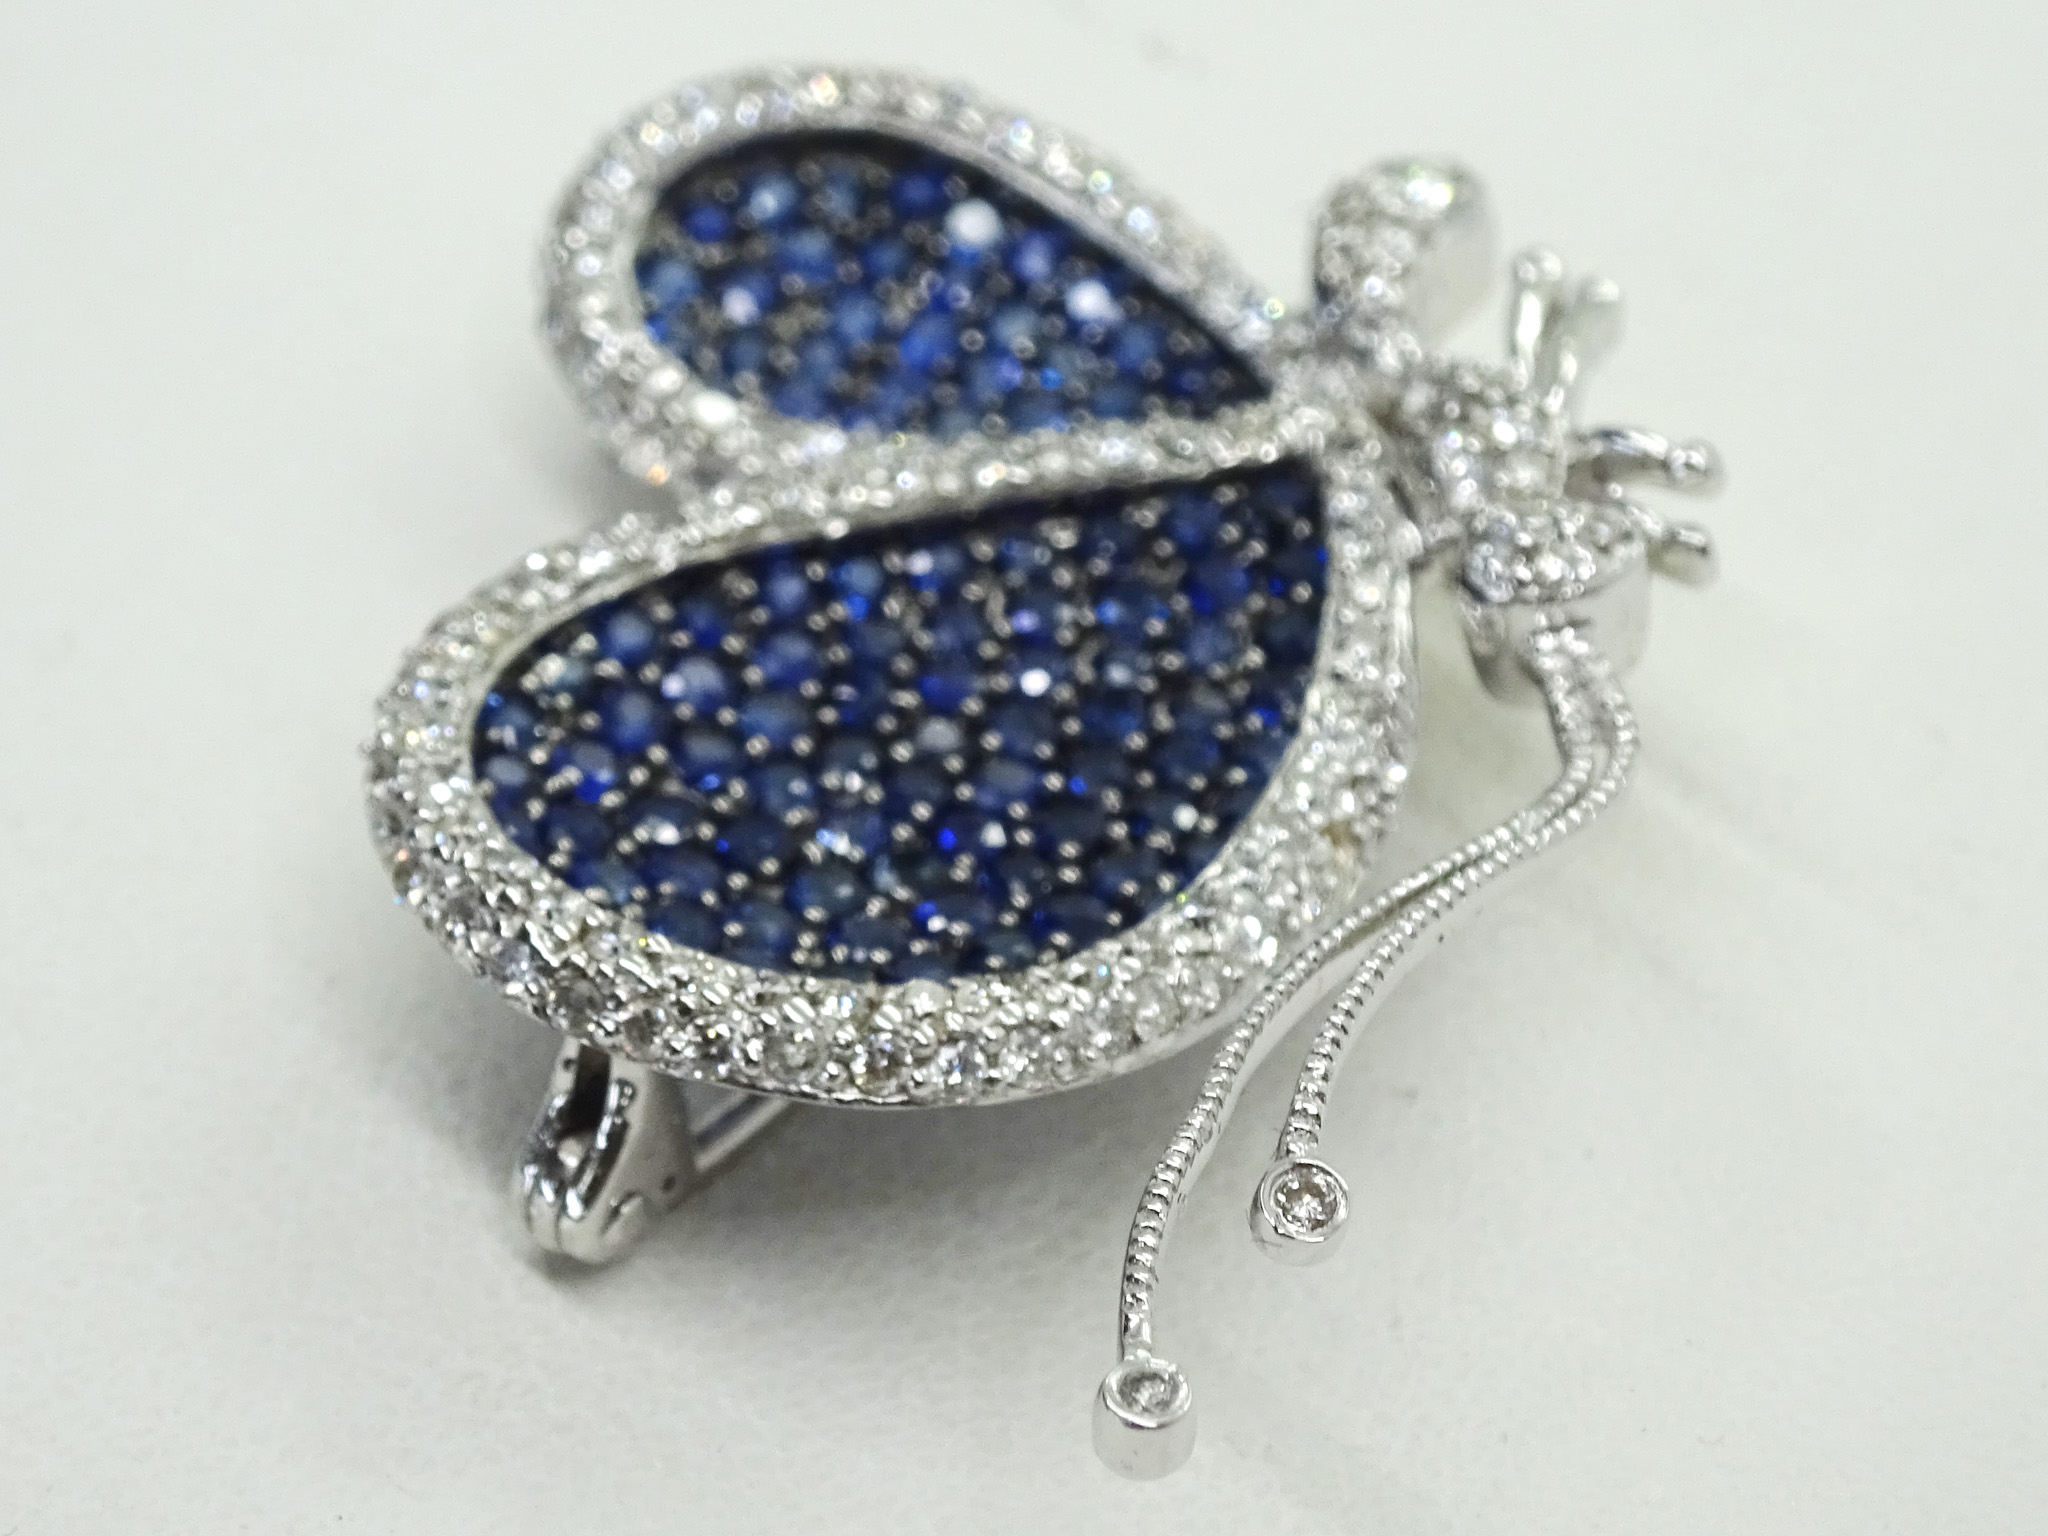 Levian Le Vian 18k Diamond & Blue Sapphire Butterfly Brooch Pin Pendant For Most Current Blue Pavé Butterfly Brooch Necklaces (View 17 of 25)